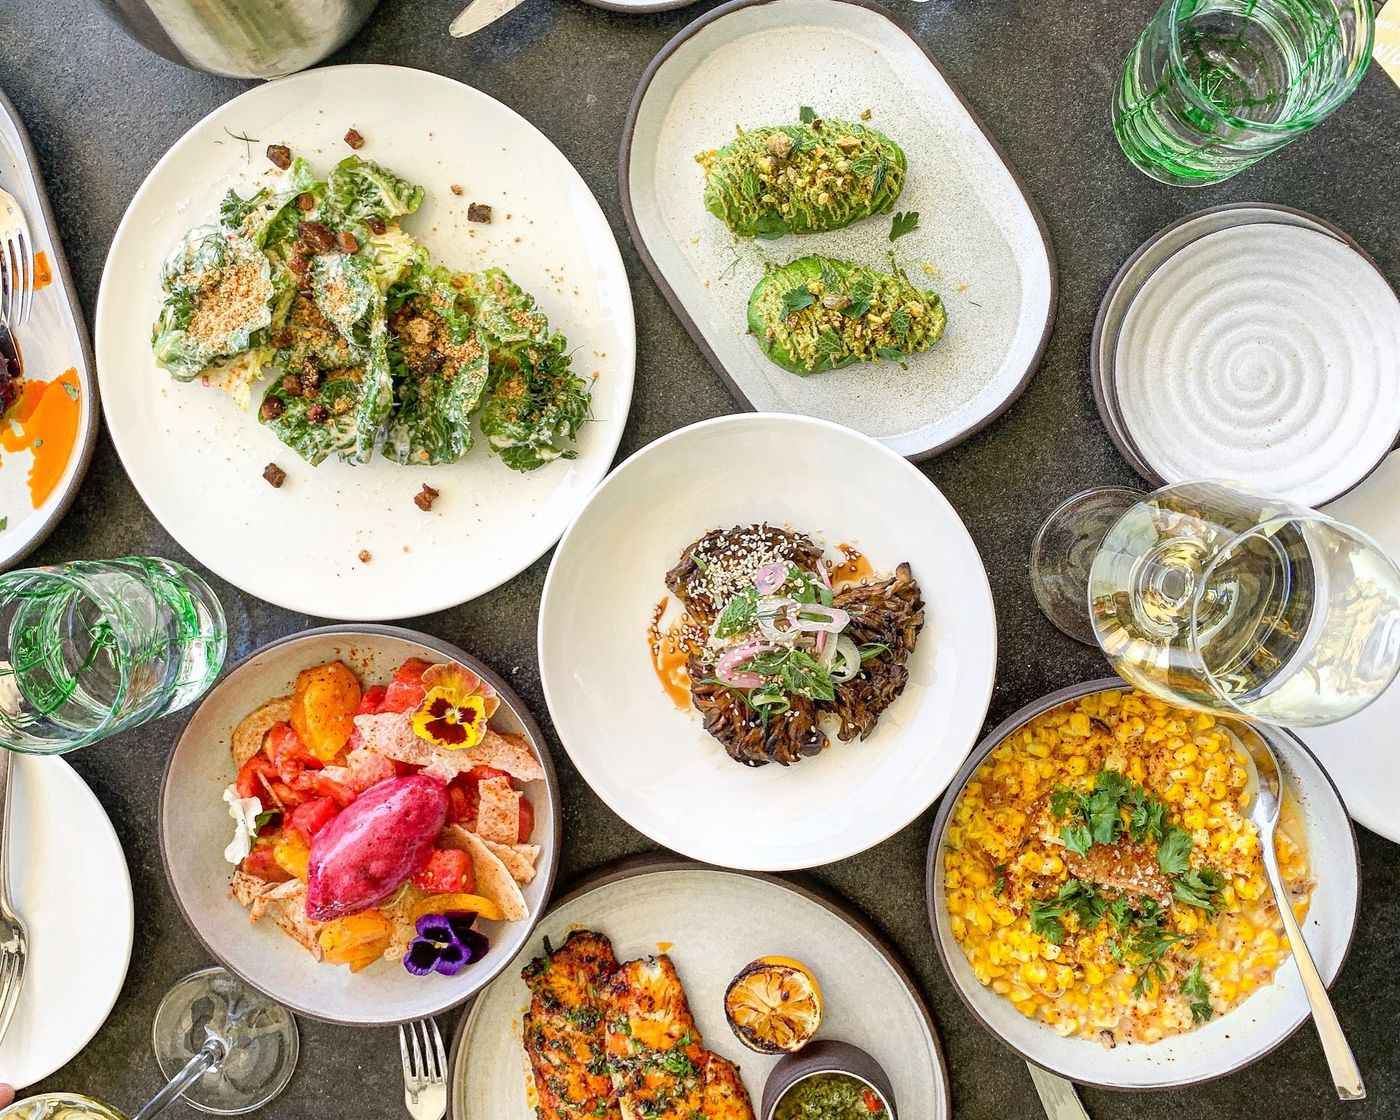 5 Great Restaurants To Try This Weekend In Los Angeles